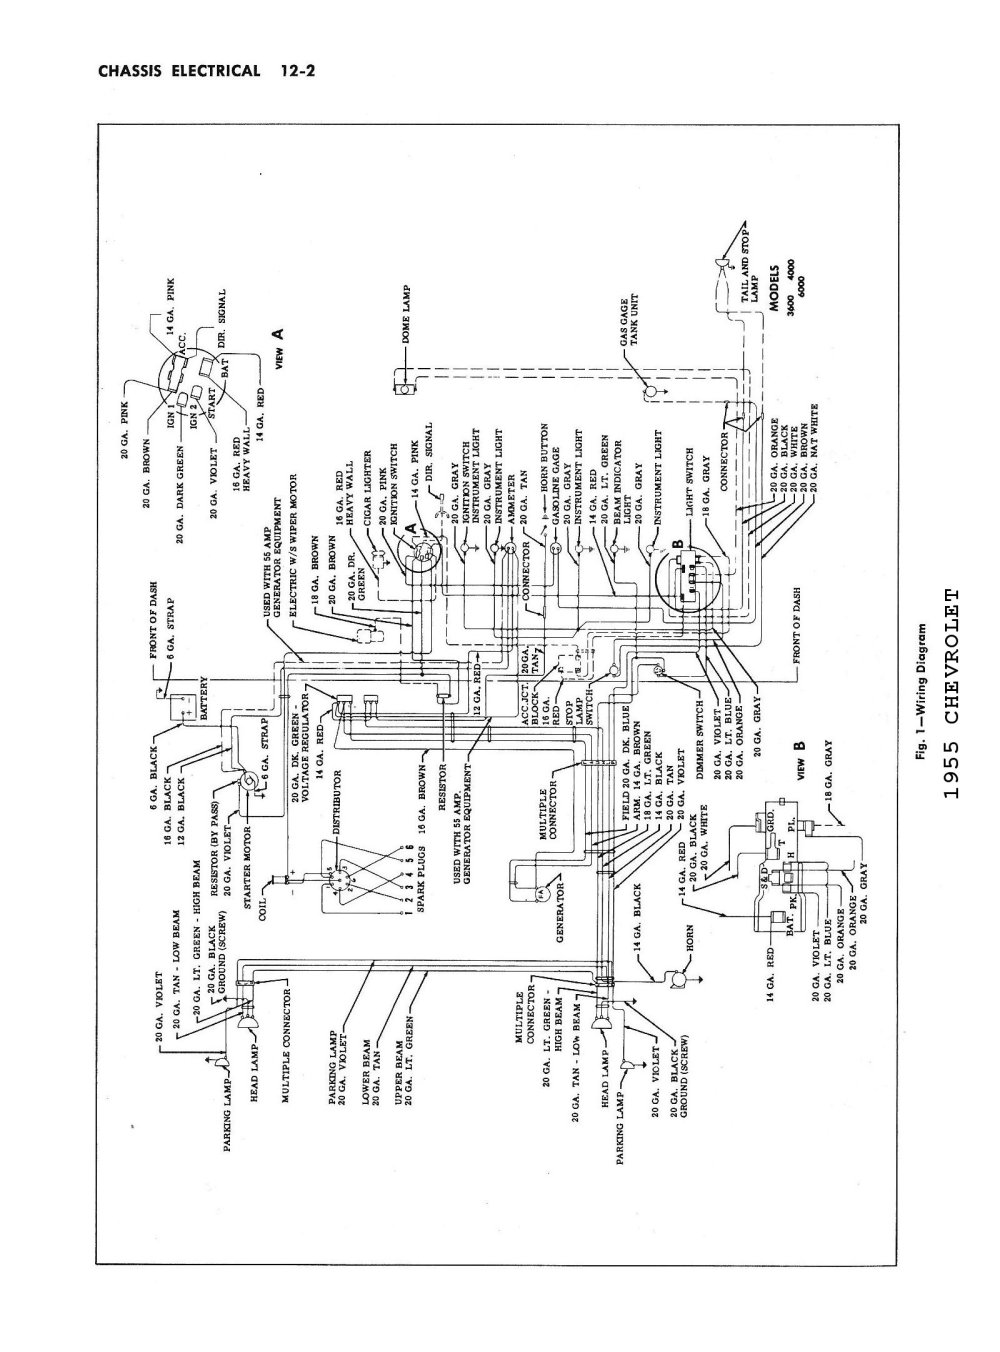 medium resolution of 55 chevy belair wiring diagram free picture wiring diagram source 48 chevy wiring diagram 55 chevy belair wiring diagram